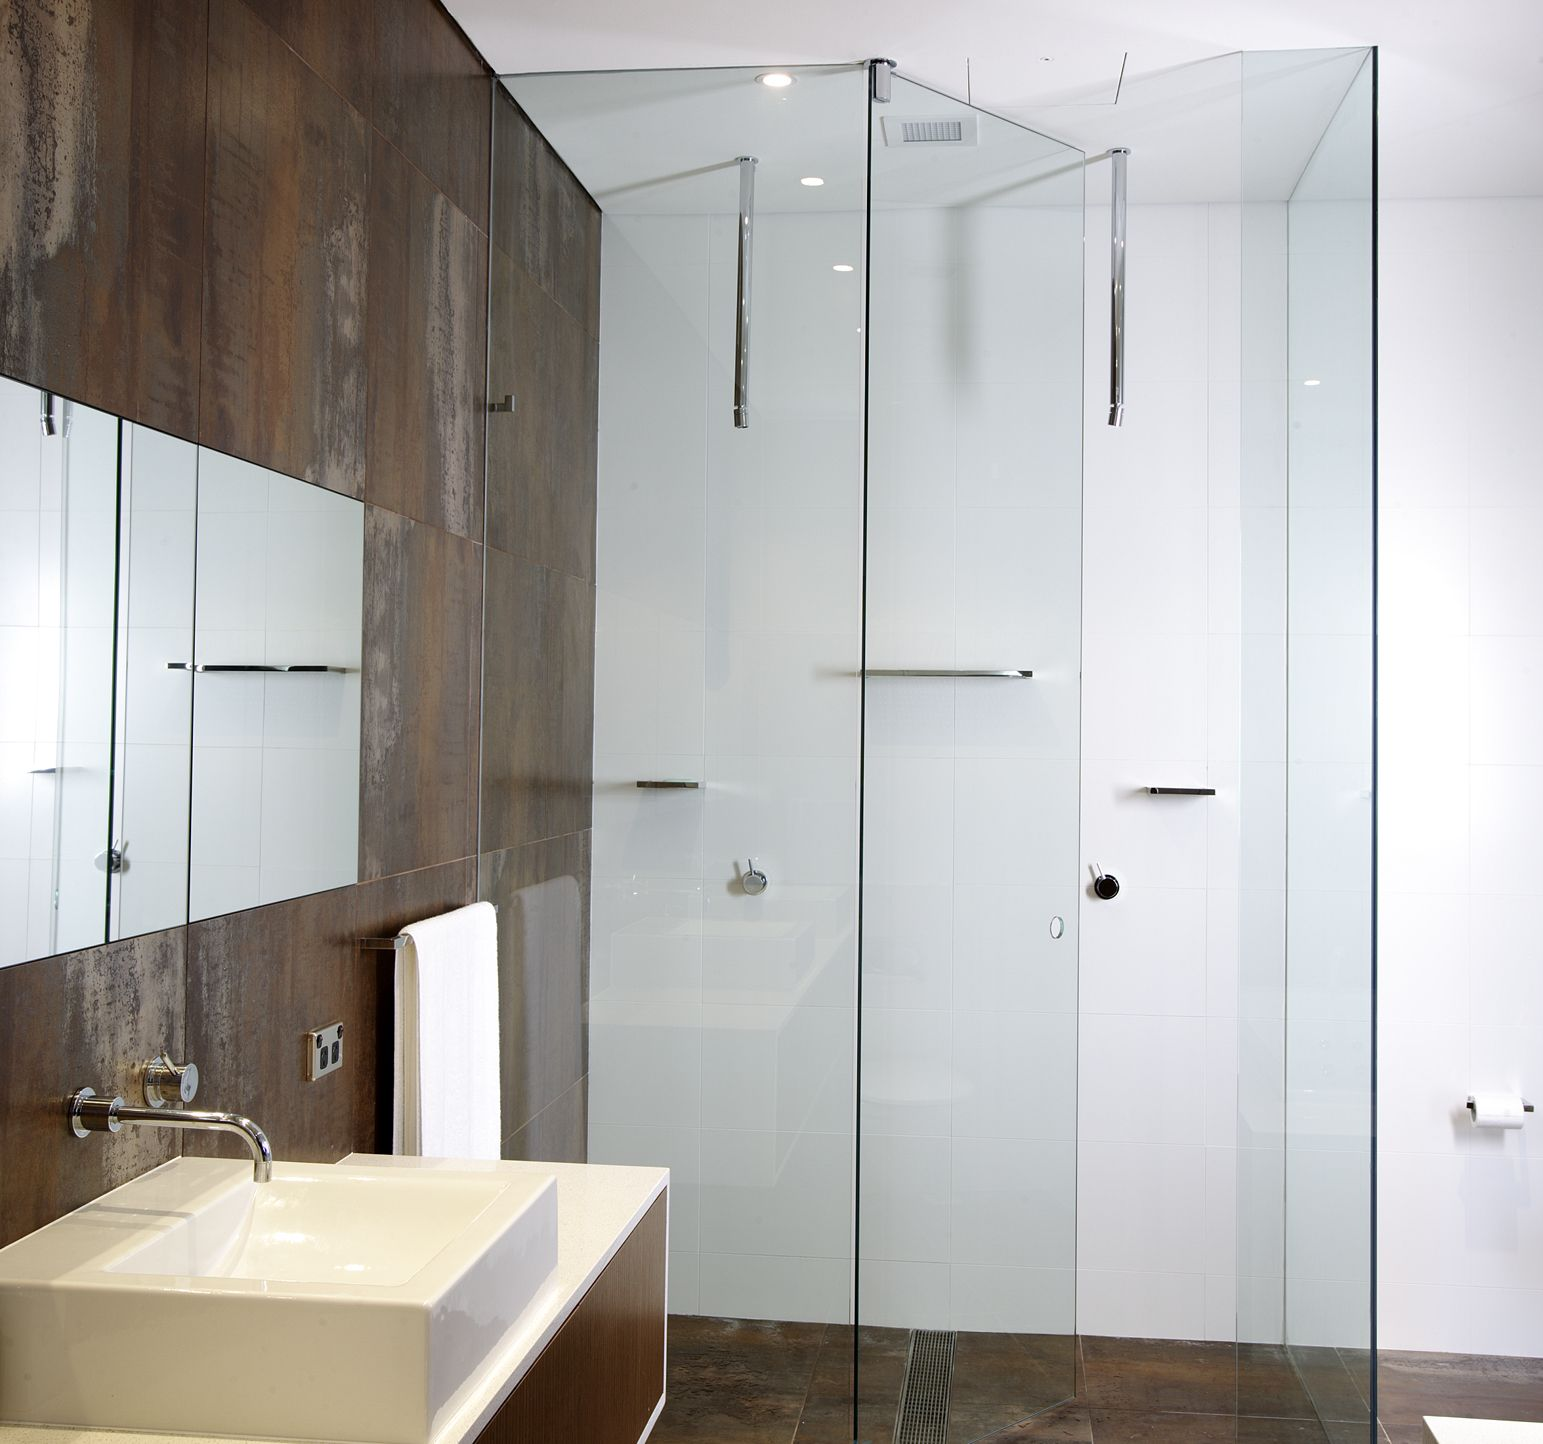 Enduroshield Easy Clean Treatment For Glass Shower Doors Cuts